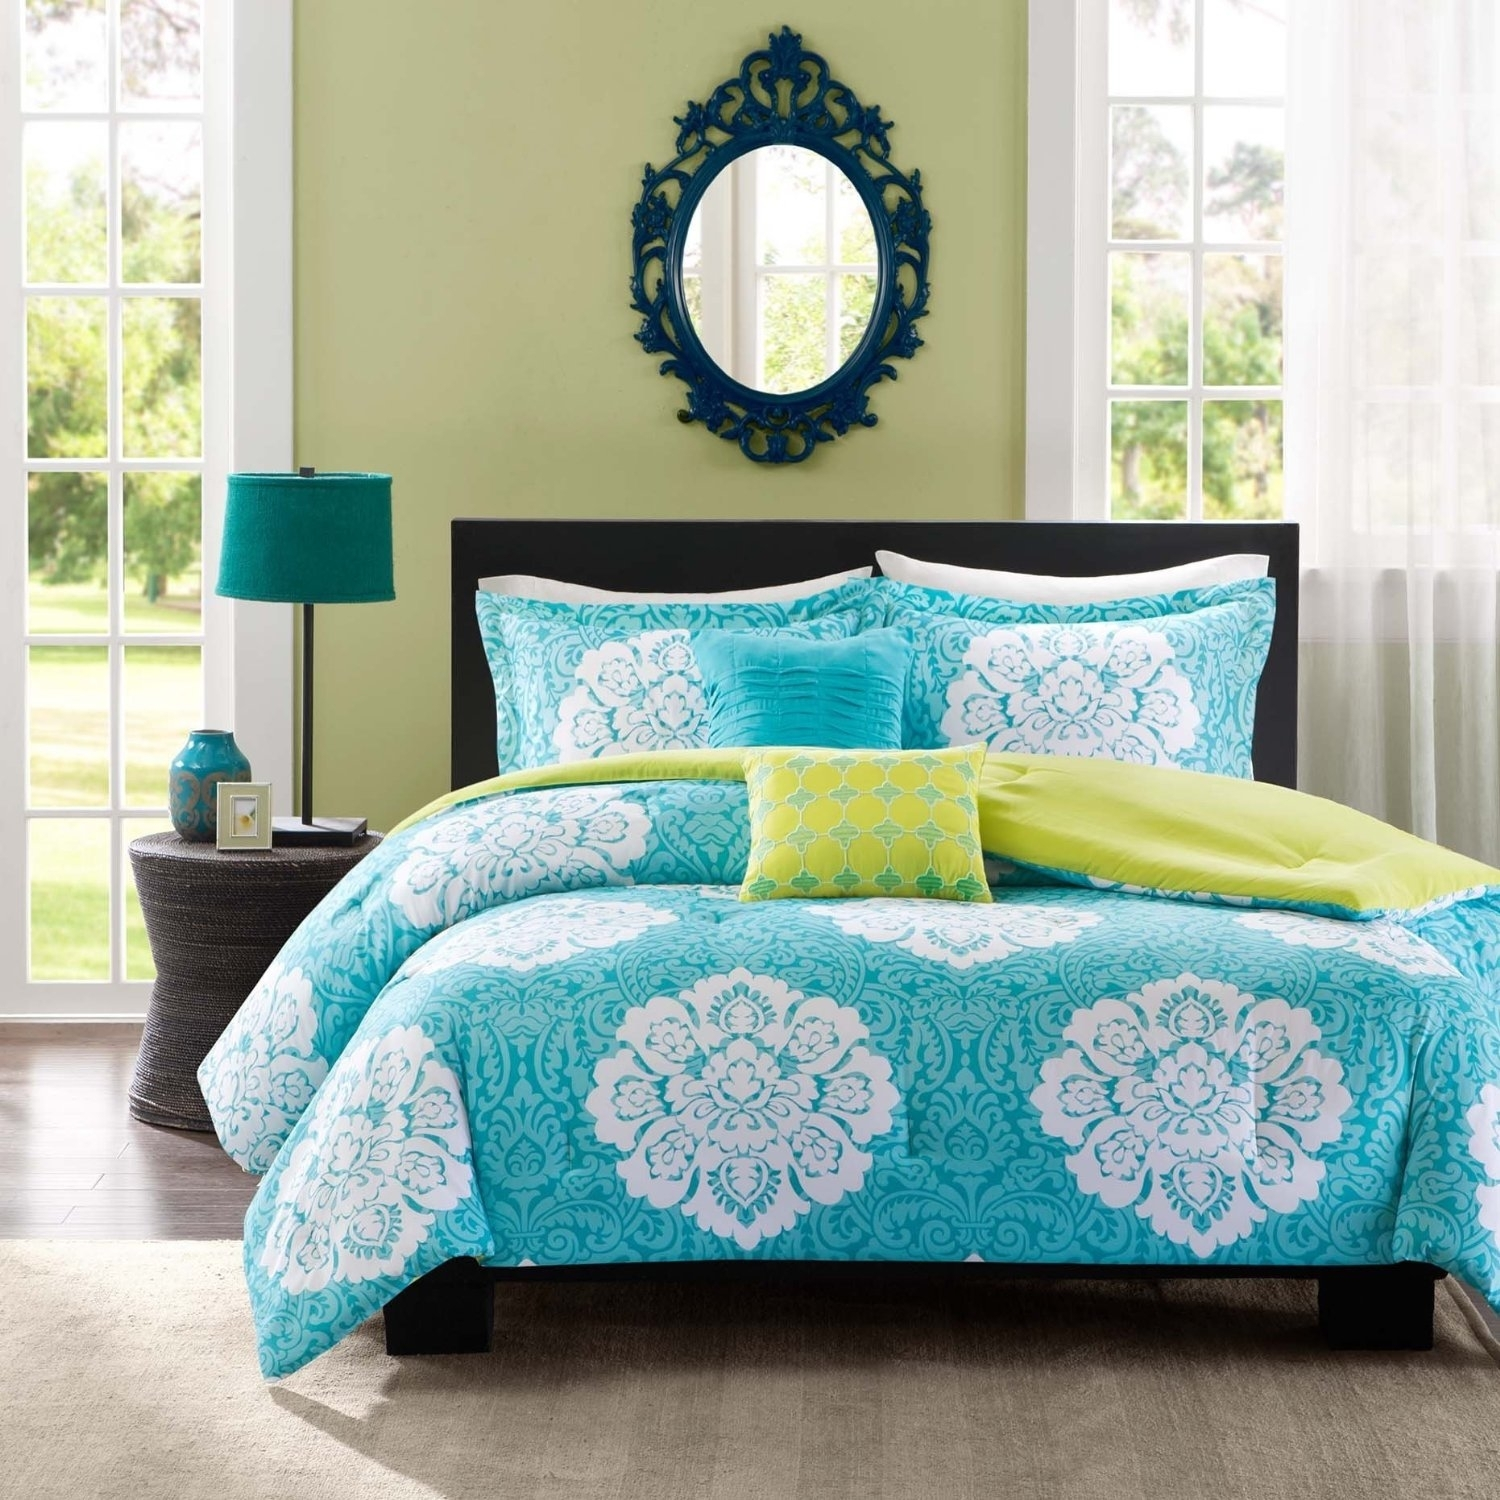 Image of: Bed Sheets for Teen Ideas Style